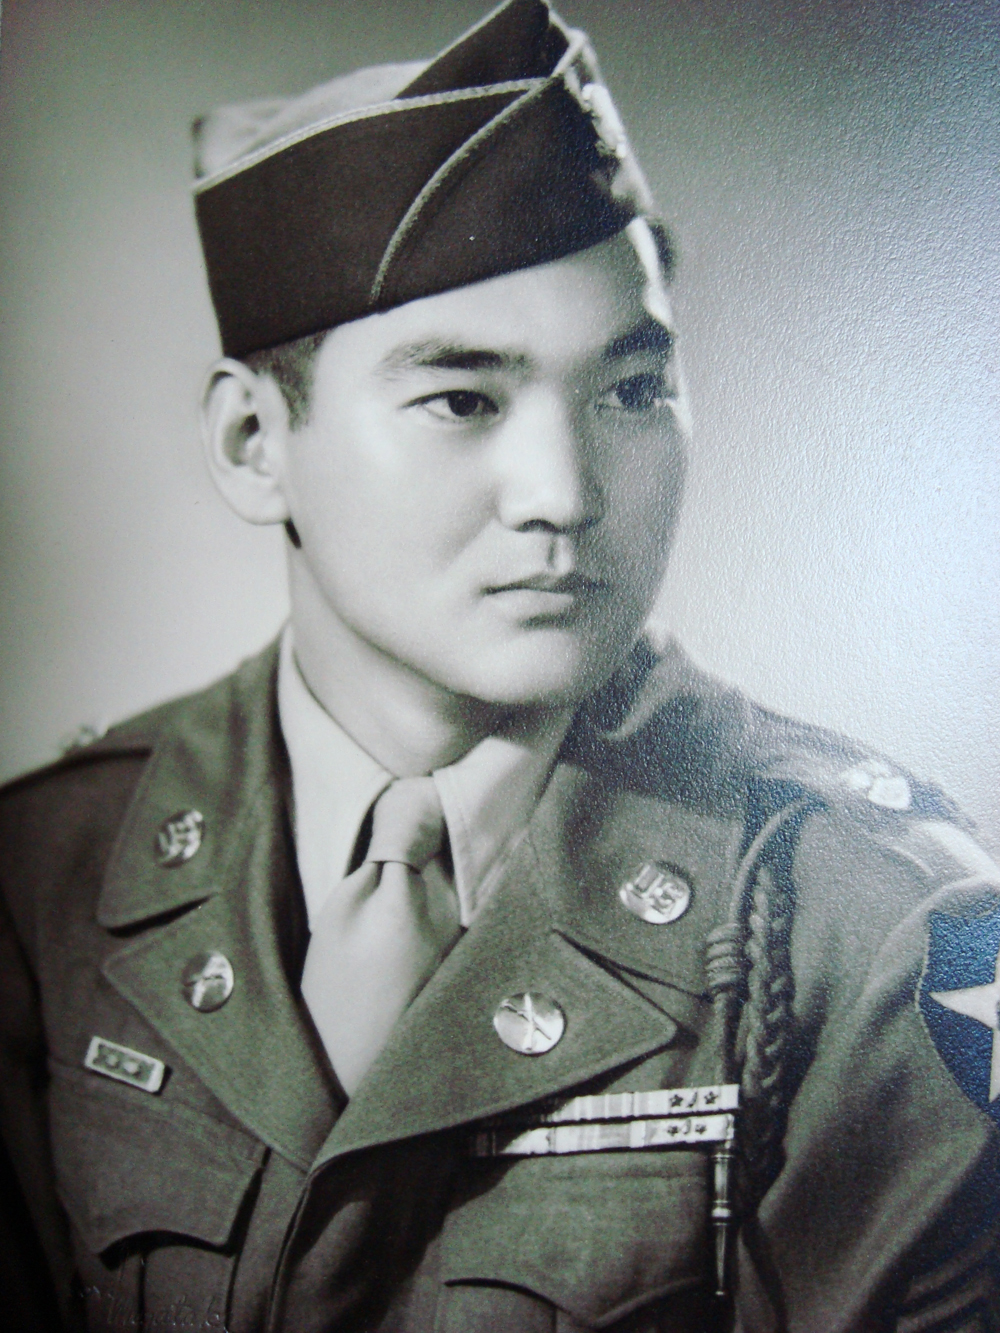 Grandpa in uniform. I am often told that I look like this slick guy...by myself.